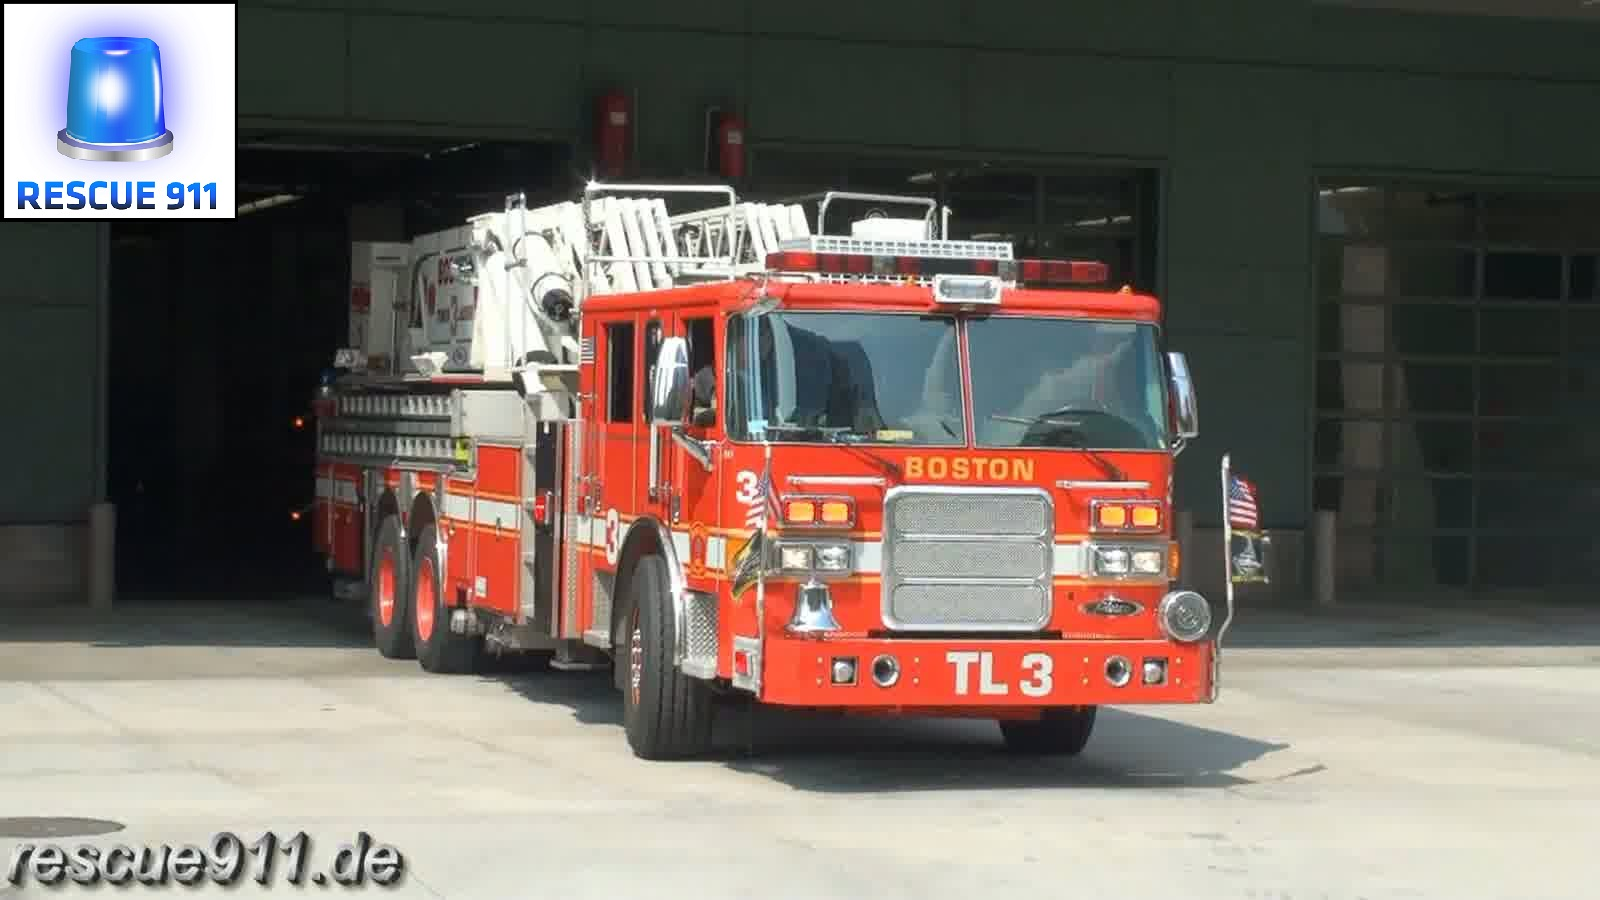 Tower ladder 3 Boston Fire Department (stream)